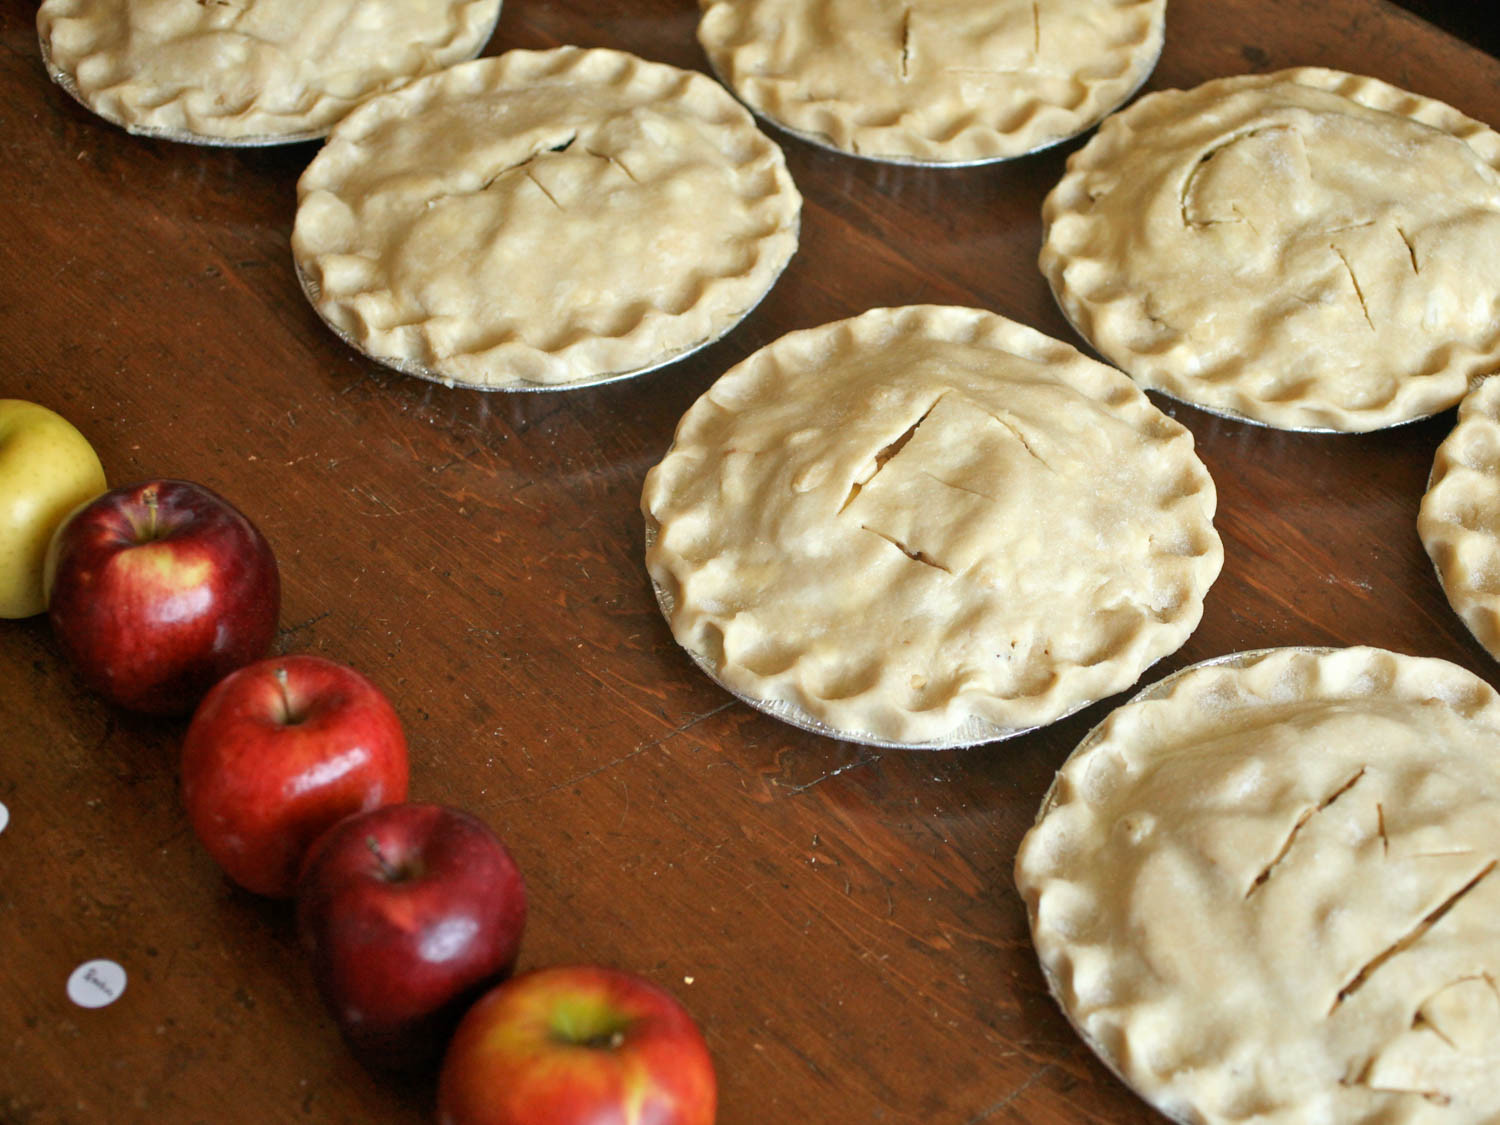 Best Apple Pie Apples  The Food Lab s Apple Pie Part 1 What Are the Best Apples